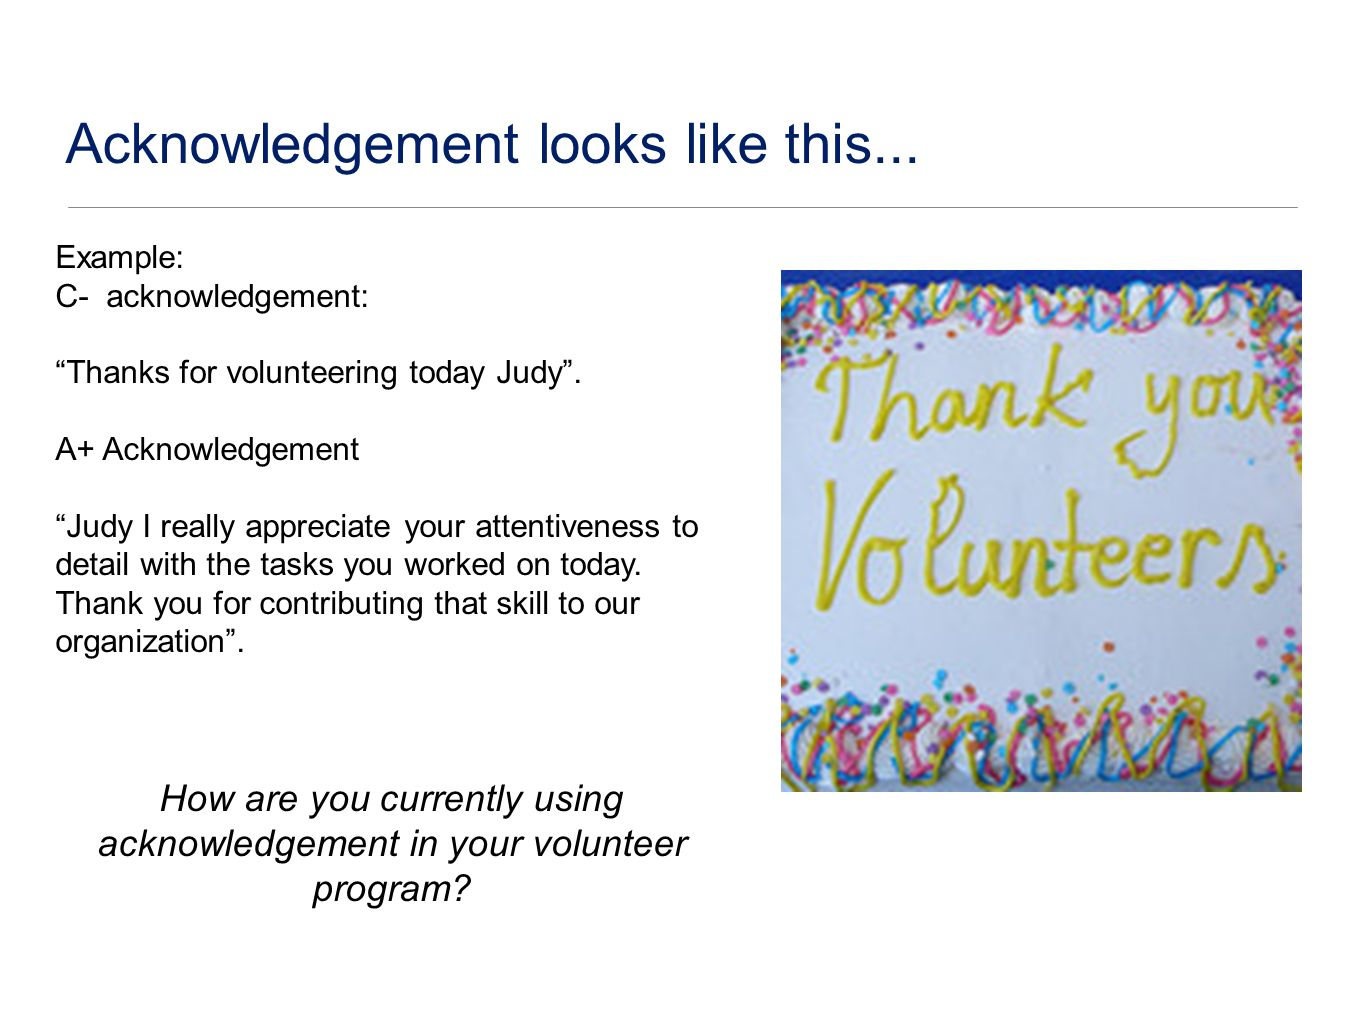 Acknowledgement looks like this... Example: C- acknowledgement: Thanks for volunteering today Judy.